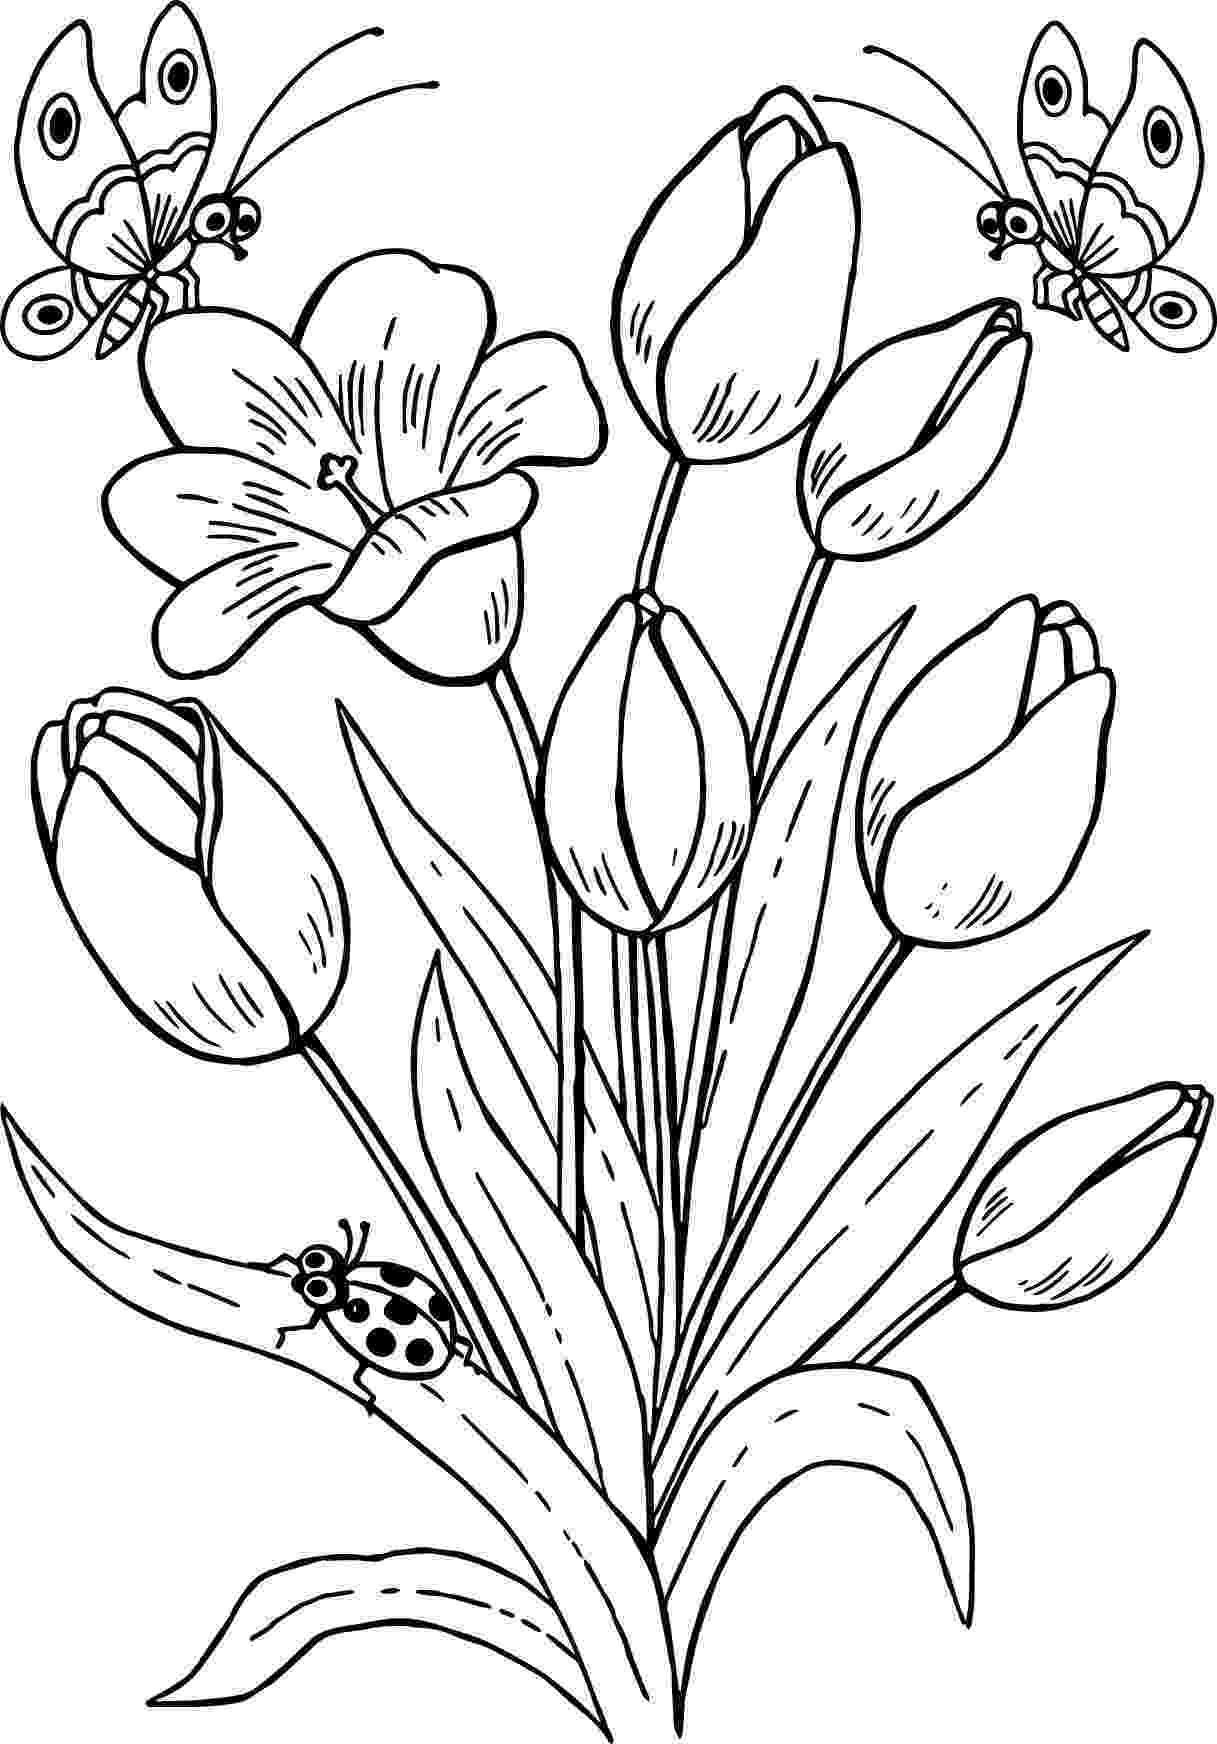 printable coloring pages of flowers and butterflies on a flower printable adult coloring page from favoreads butterflies pages flowers printable and of coloring